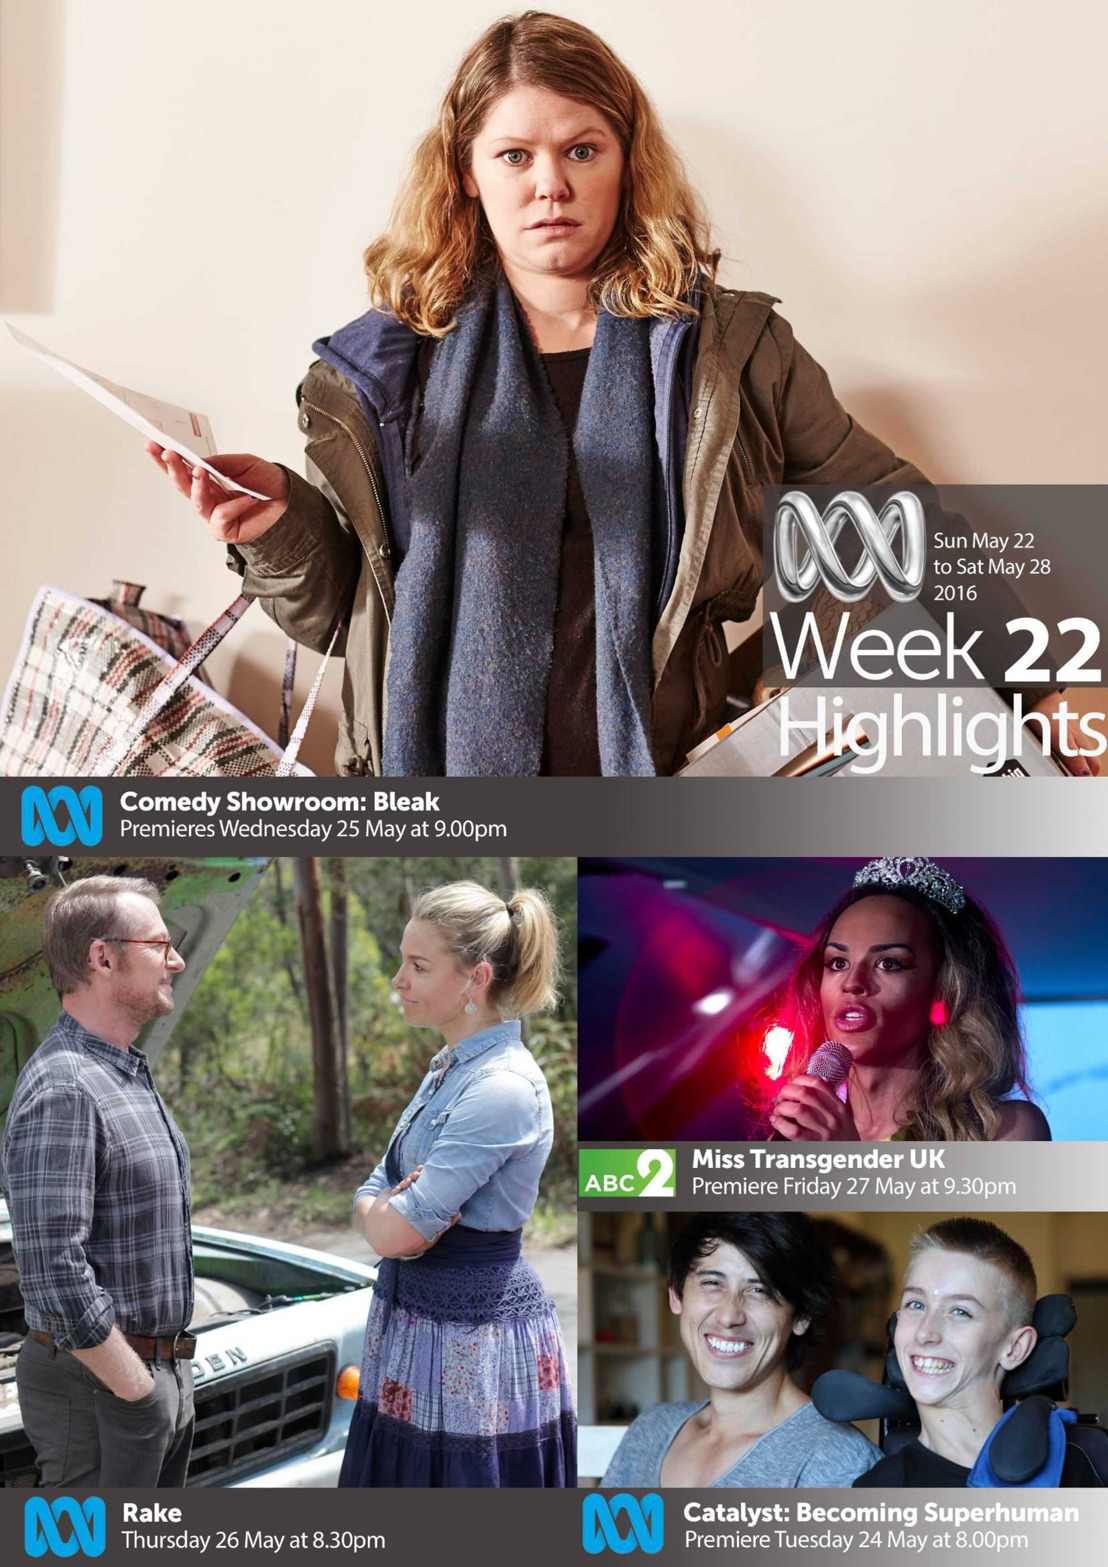 ABC Program Highlights - Week 22